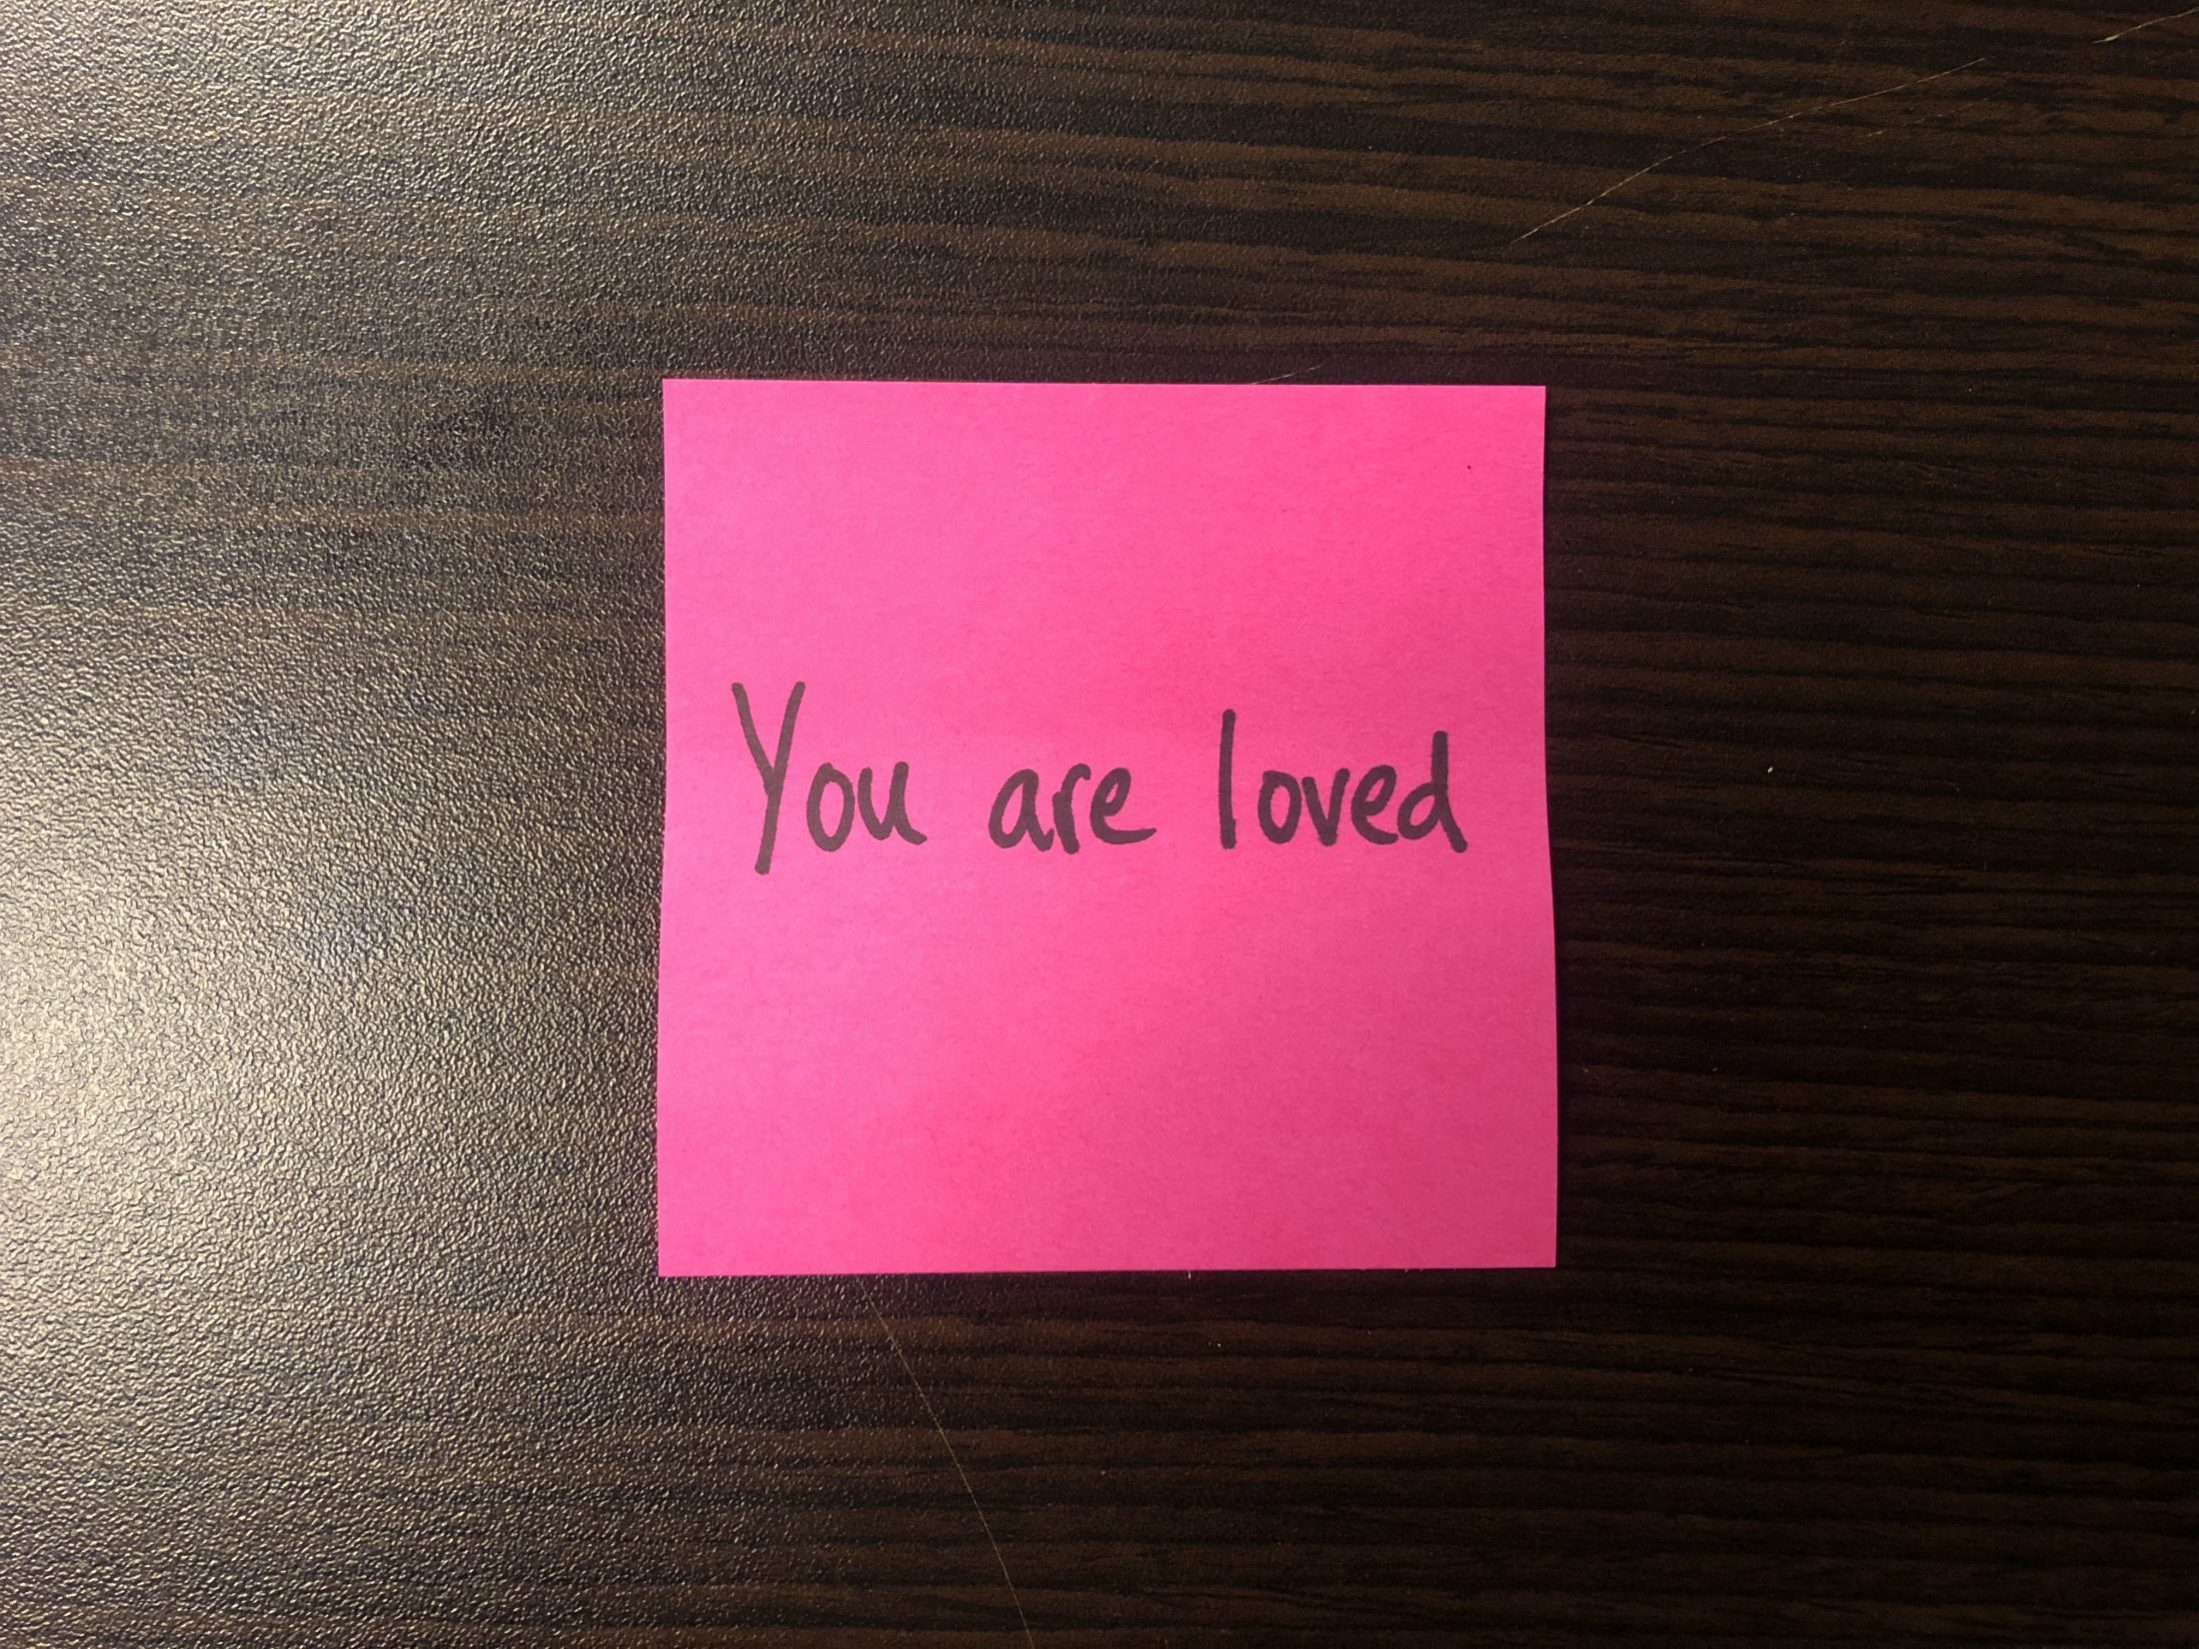 DC Widow blog writer Marjorie Brimley's desk with note that says you are loved